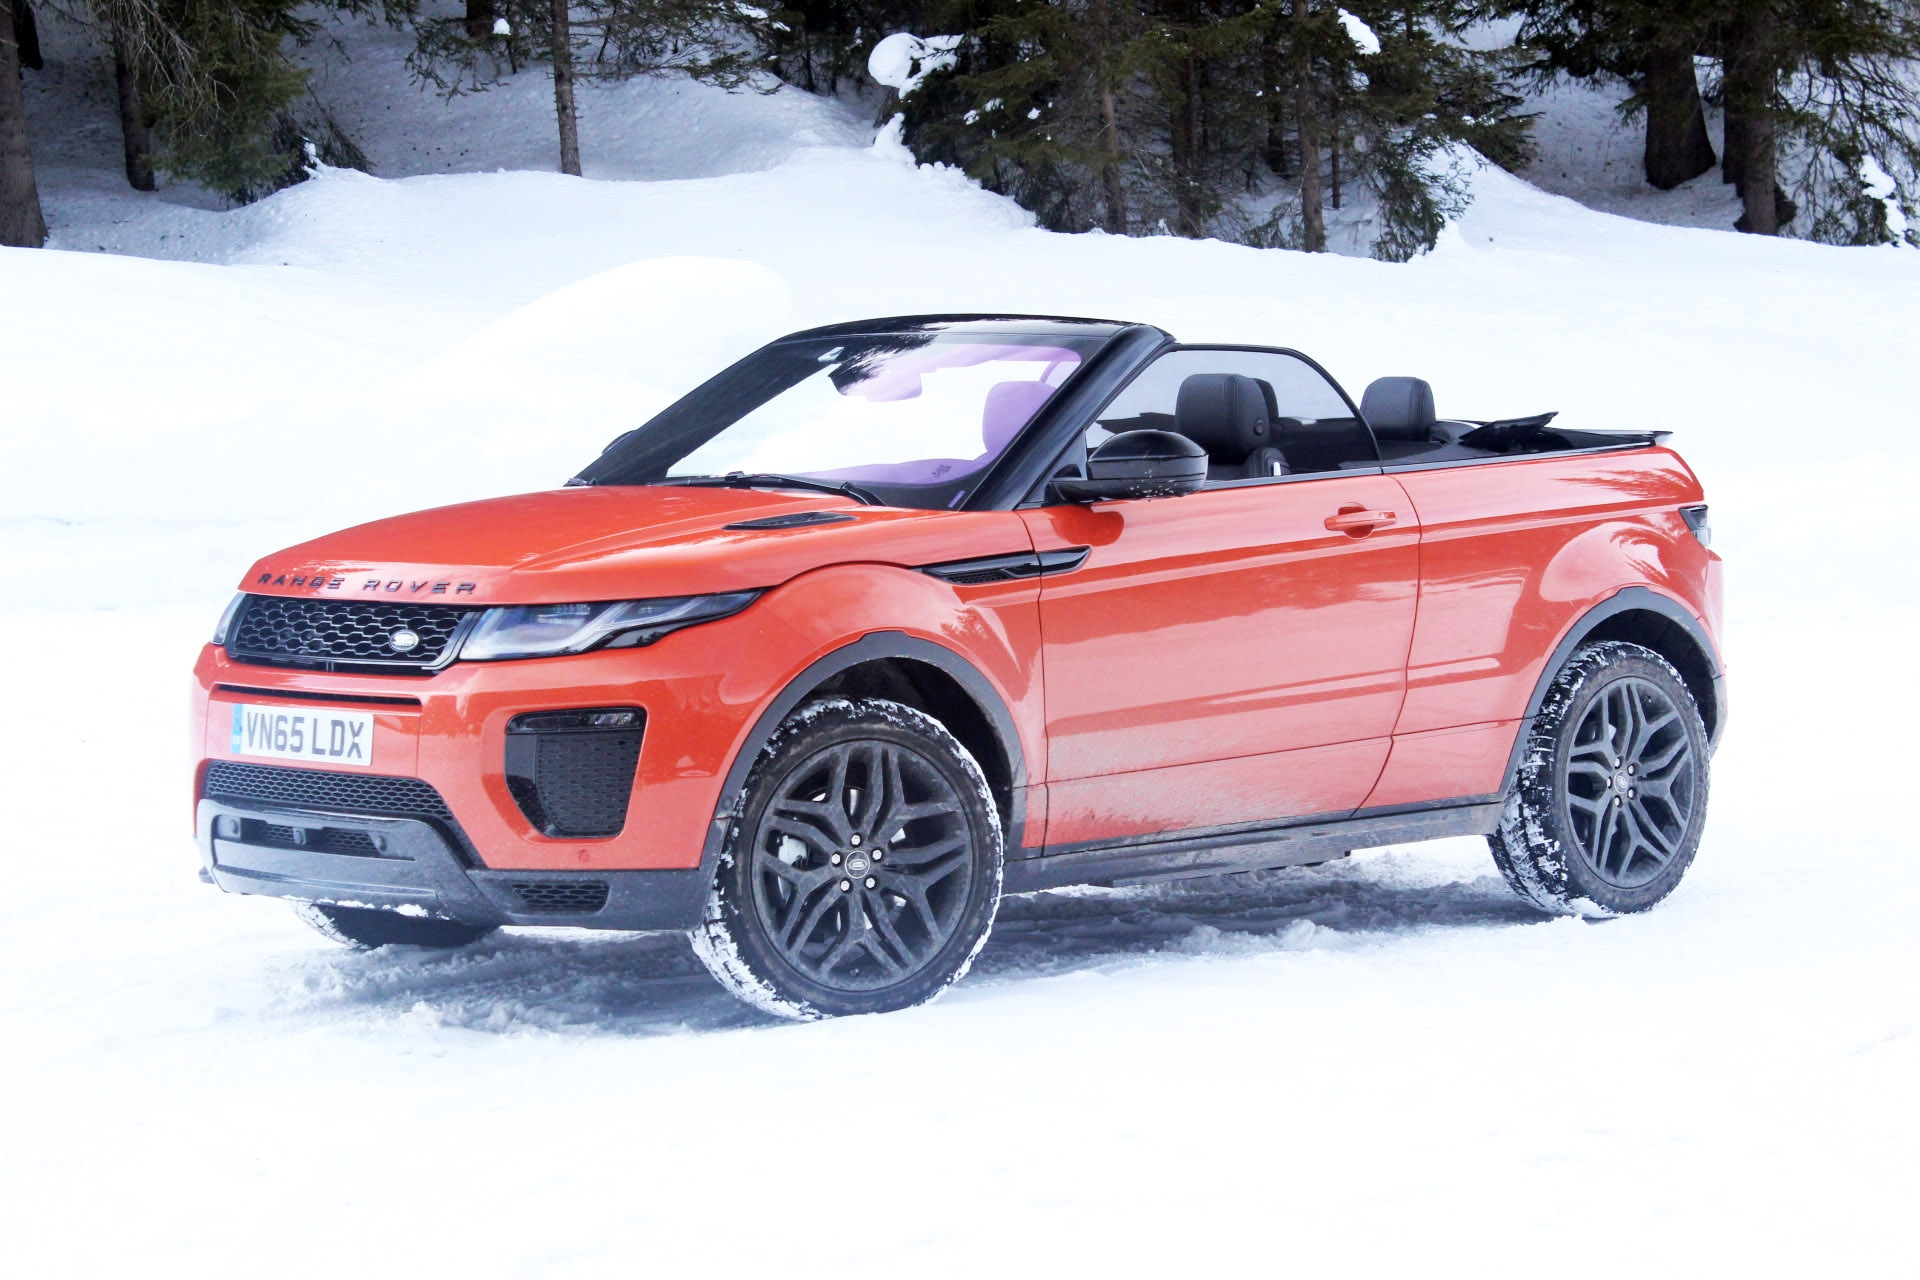 essai vid o range rover evoque cabriolet un petit caprice. Black Bedroom Furniture Sets. Home Design Ideas